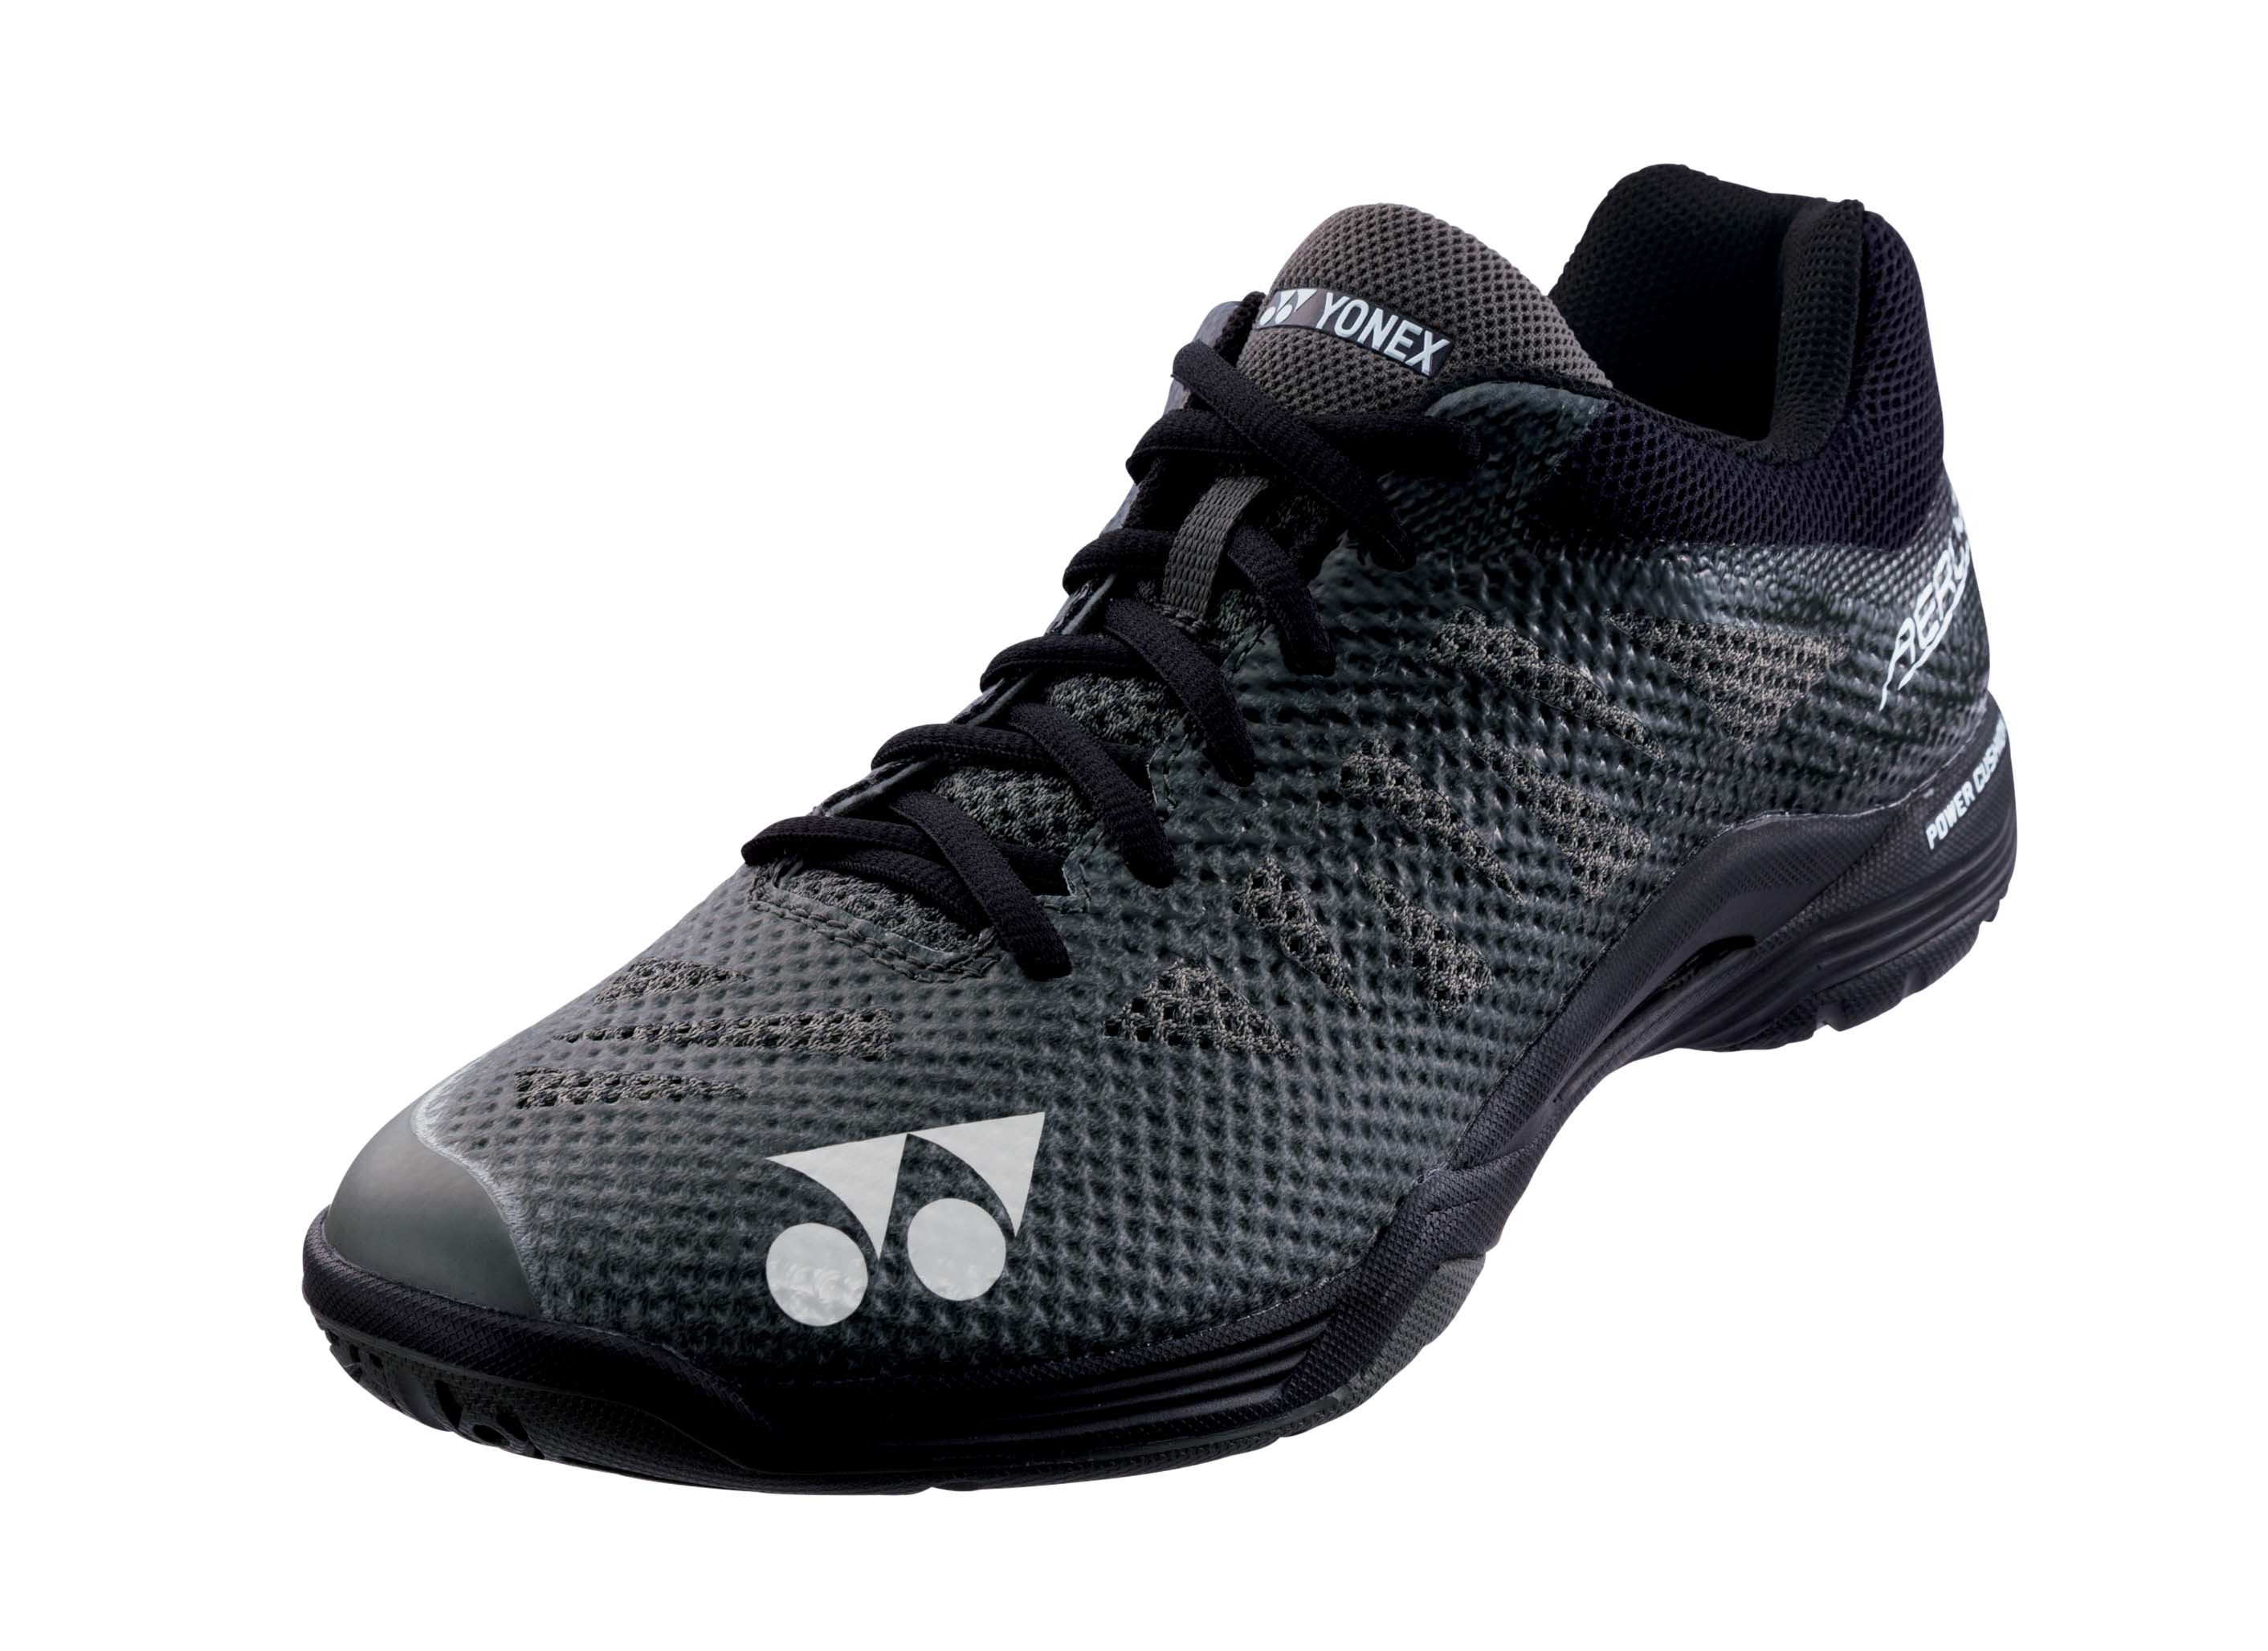 cba695bfcf43a Halová obuv YONEX SHB POWER CUSHION AERUS 3 black